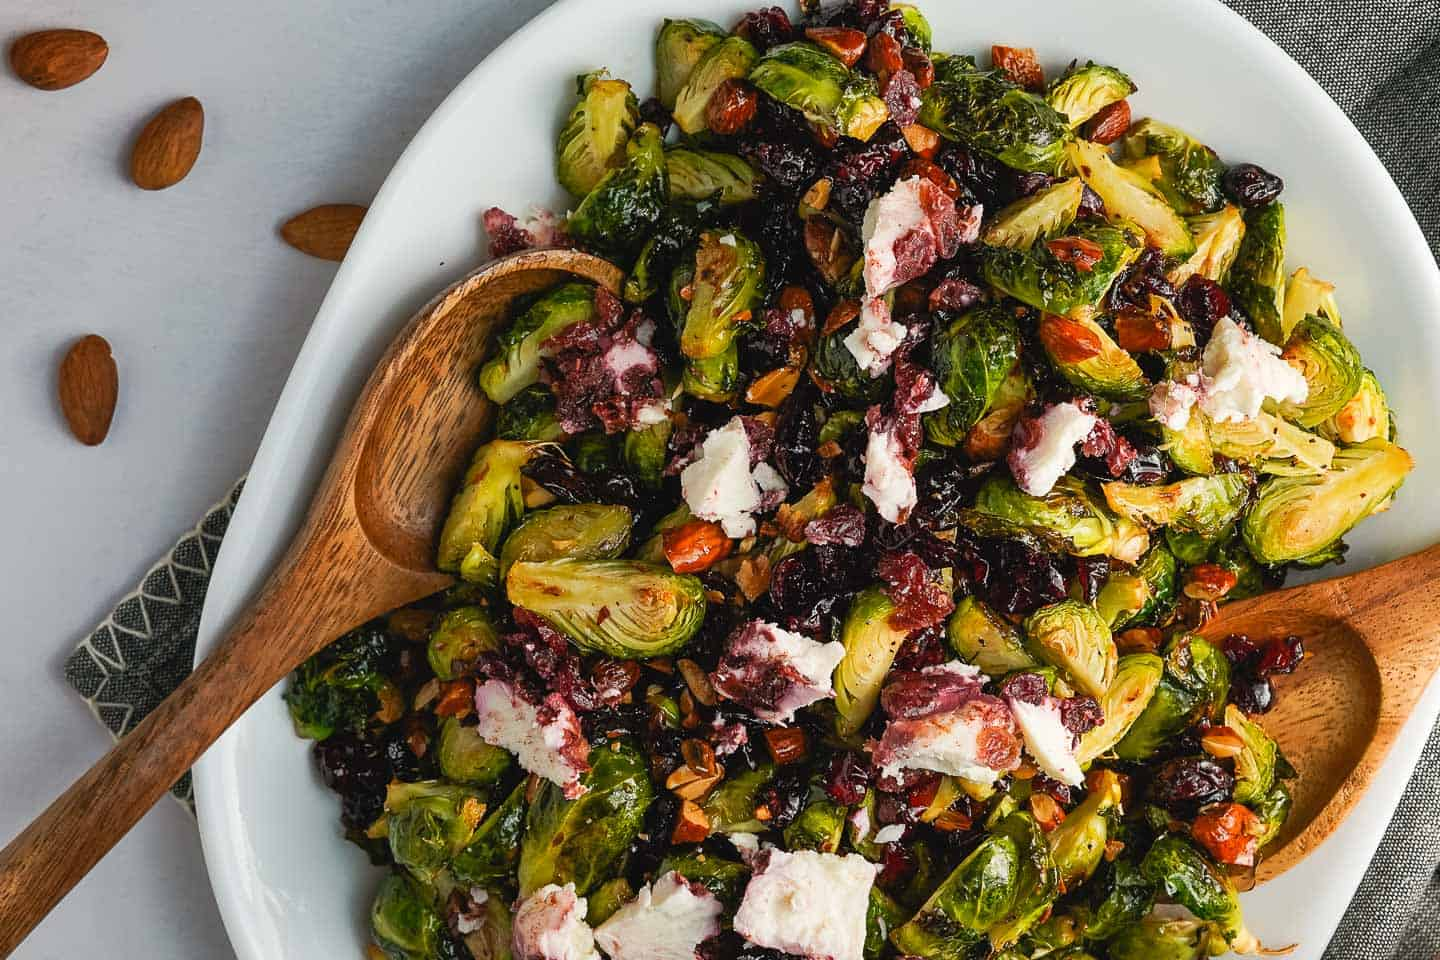 Brussels Sprout Salad with Cranberries Close Up view